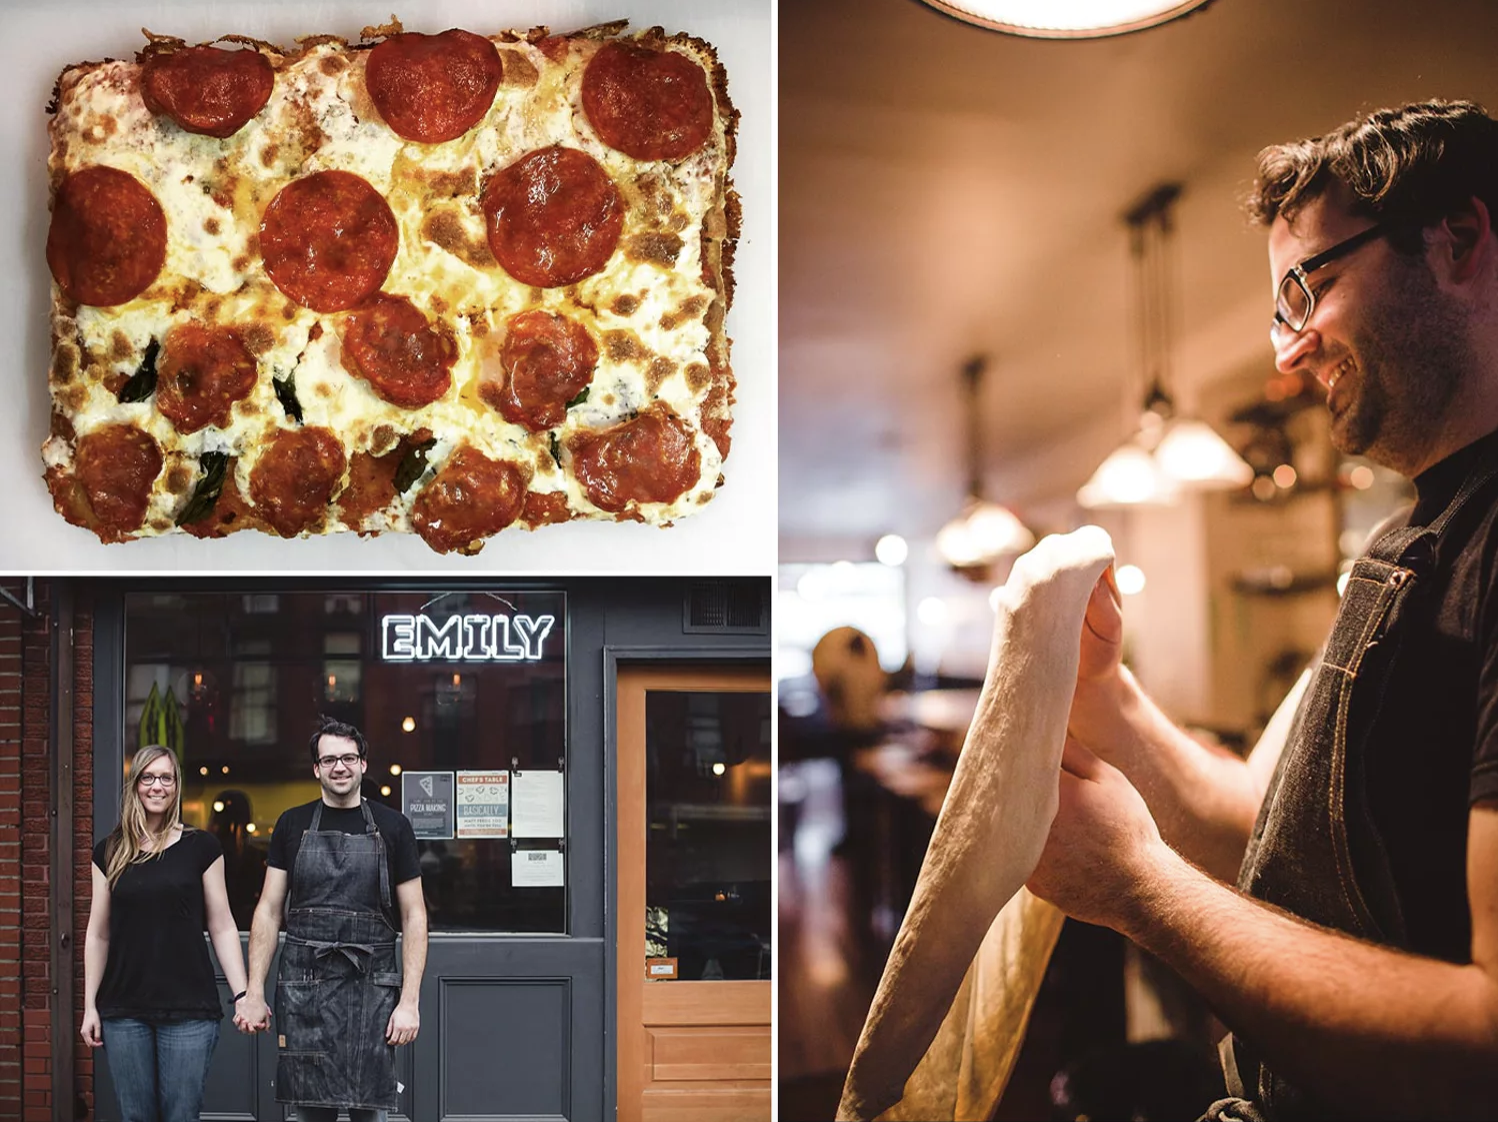 Roberta's and Emily Pizza will launch square pizza operations.